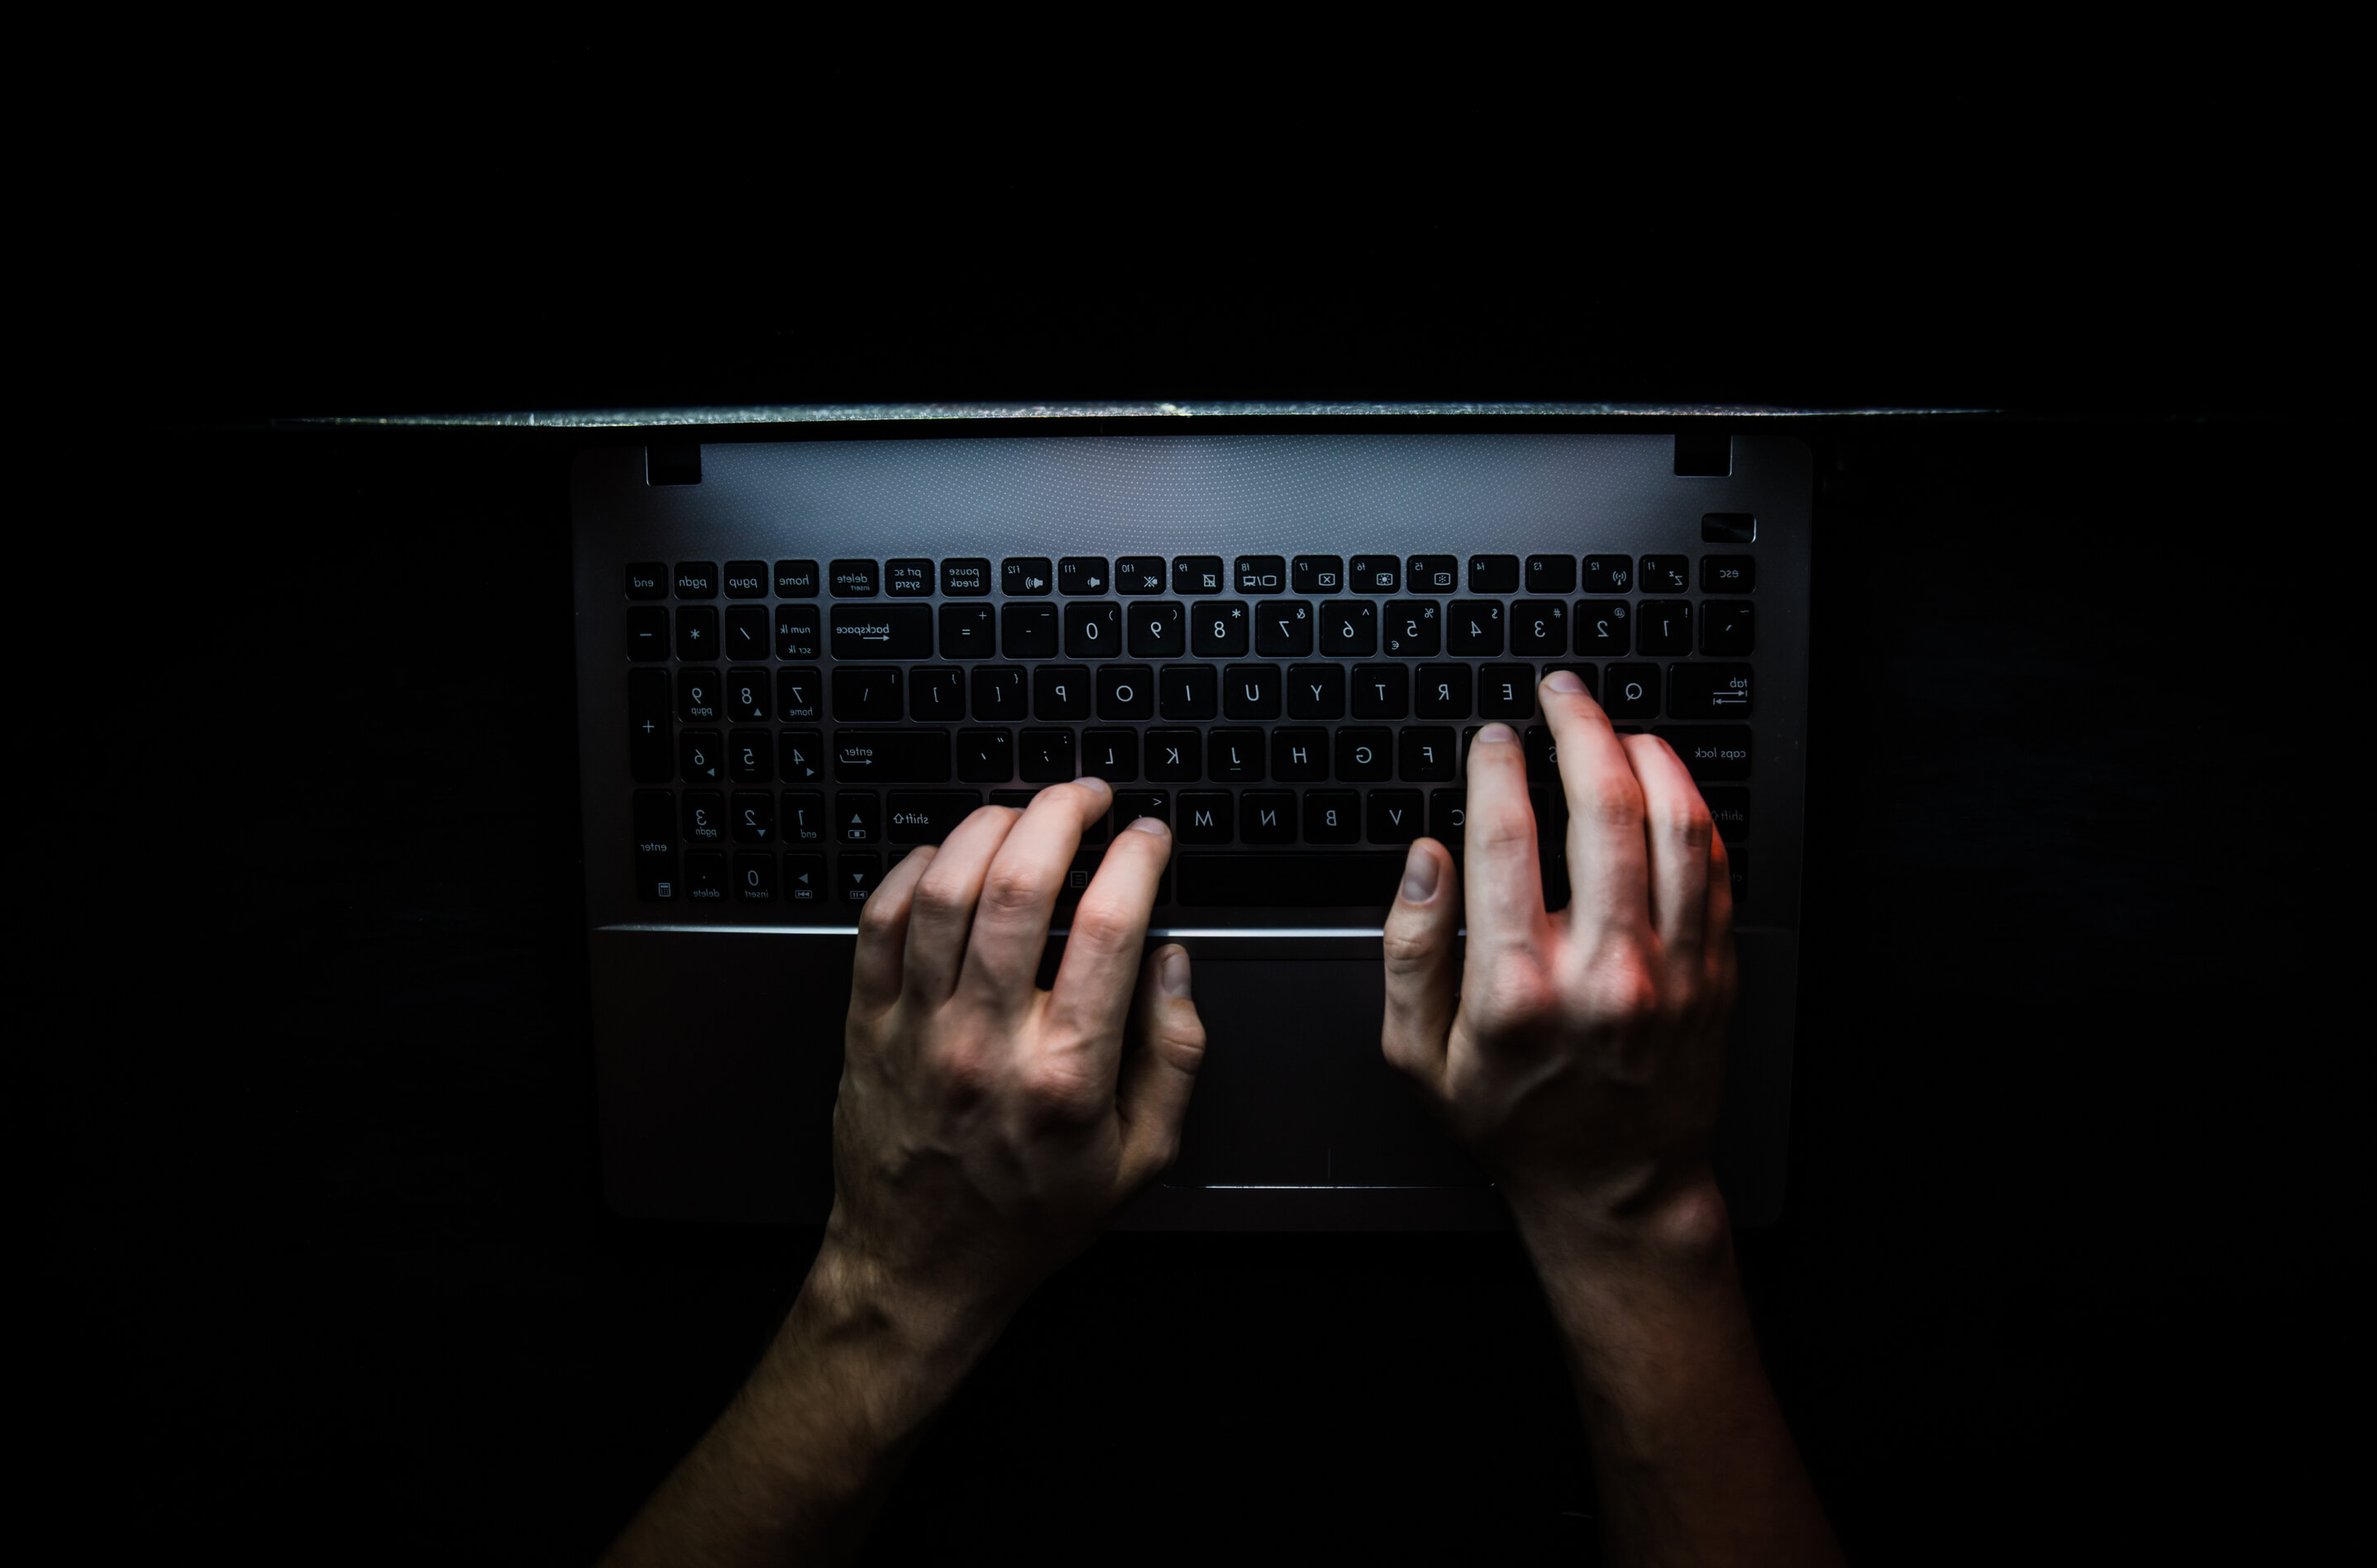 <p>If you use this Mobile phone Provider, your Private data might've been stolen thumbnail